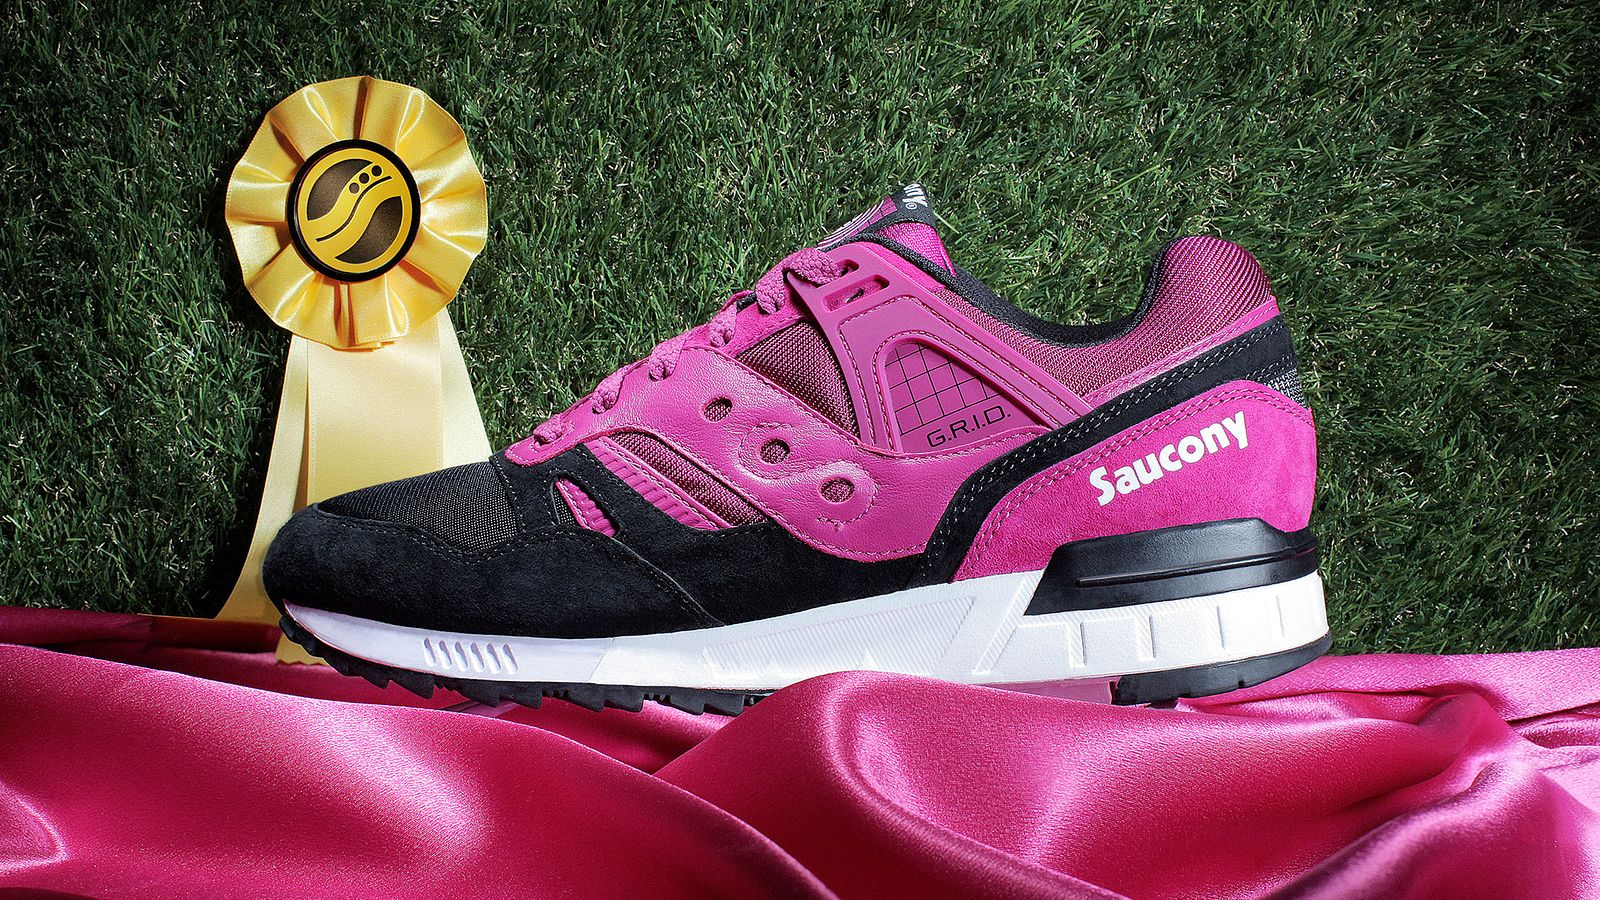 Derby shoe for Saucony Originals, styled by Someoddpilot